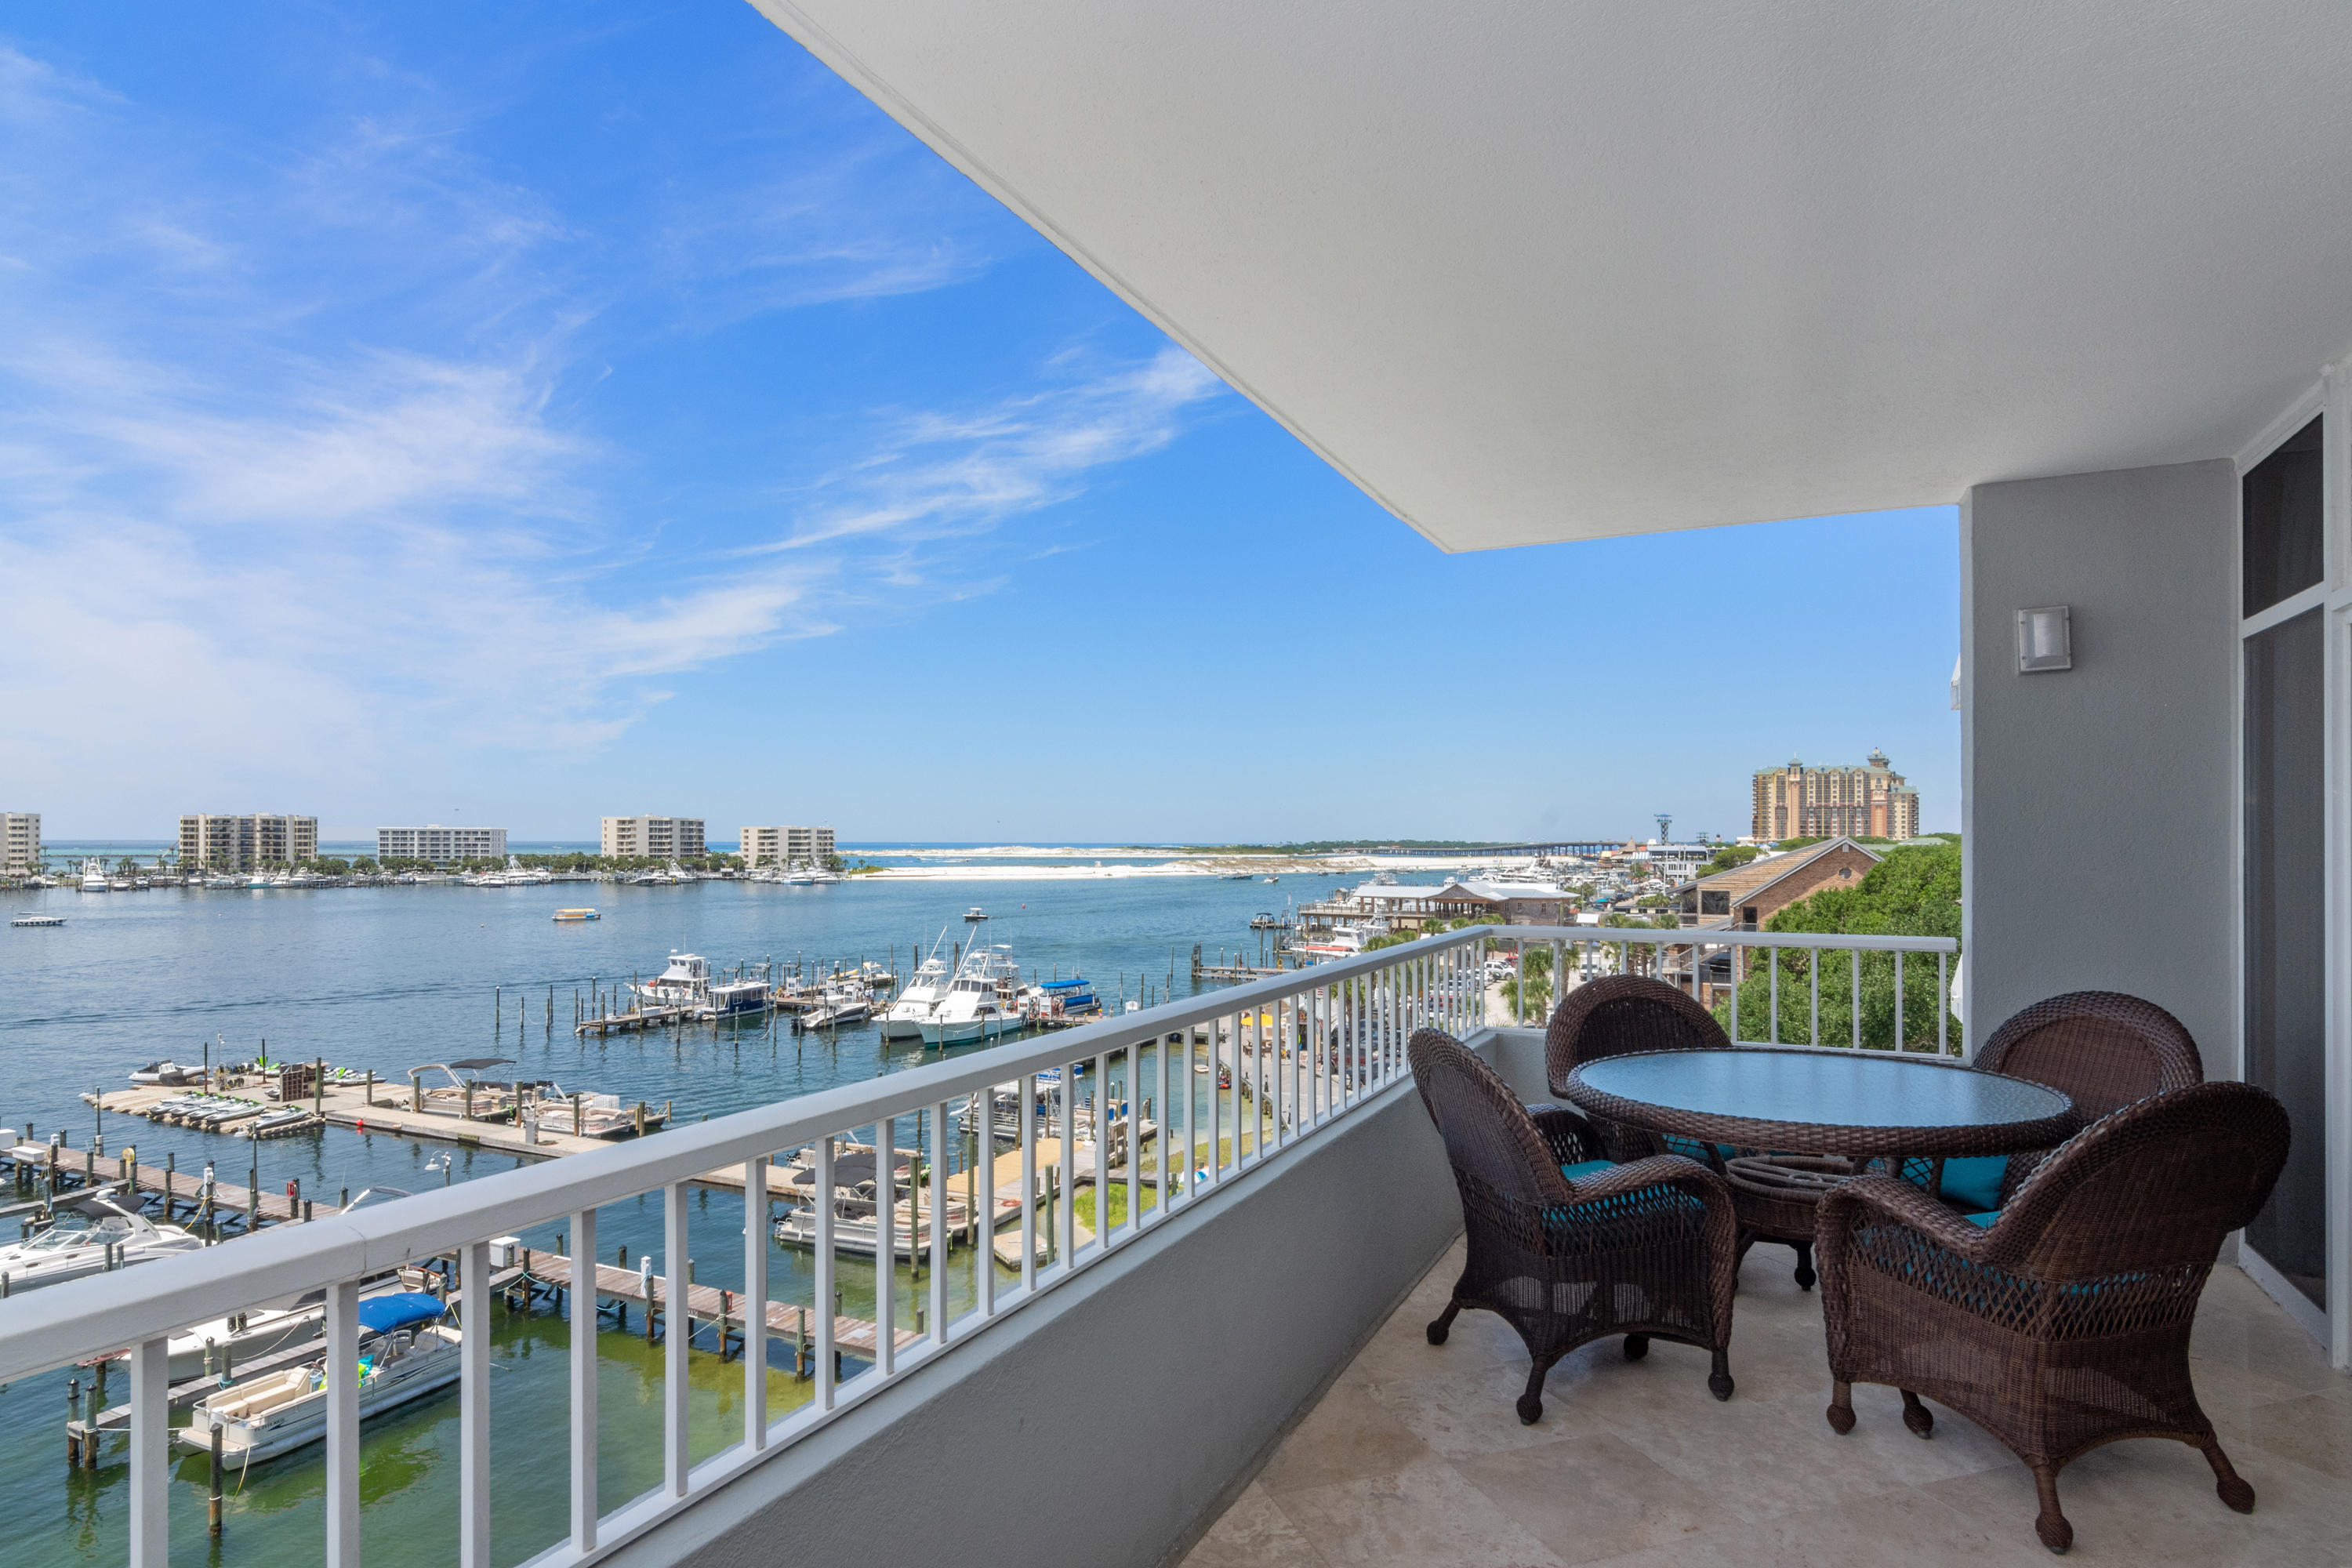 If you're checklist includes: high-end, multiple bedrooms with knockout Harbor/Gulf Views, a large floor plan great for entertaining, and a 55' Boat Slip...look no further, as C403 will be your last stop!  This condo is loaded with optimal features that stand out from other condos on the market and includes: Diamond-polished travertine, crown molding, surround sound, travertine showers, Bamboo floors and remote control drapery in the Master Bedroom, Toto toilets, extended balcony with polished travertine, bedroom closet built-ins, and so much more.  The premium kitchen features granite countertops, stone backsplash, Sub Zero refrigerator, wine cooler, ice maker, and large kitchen island with mosaic tile. DYC just released its new lobby, owners lounge, and amenity renovations including a... new fitness room, inside/outside bars, pool table and more!  The new design brings owners together and truly gives a resort style feel ideal for networking or making new friendships!  Call today for more information and to see this unit while it lasts.